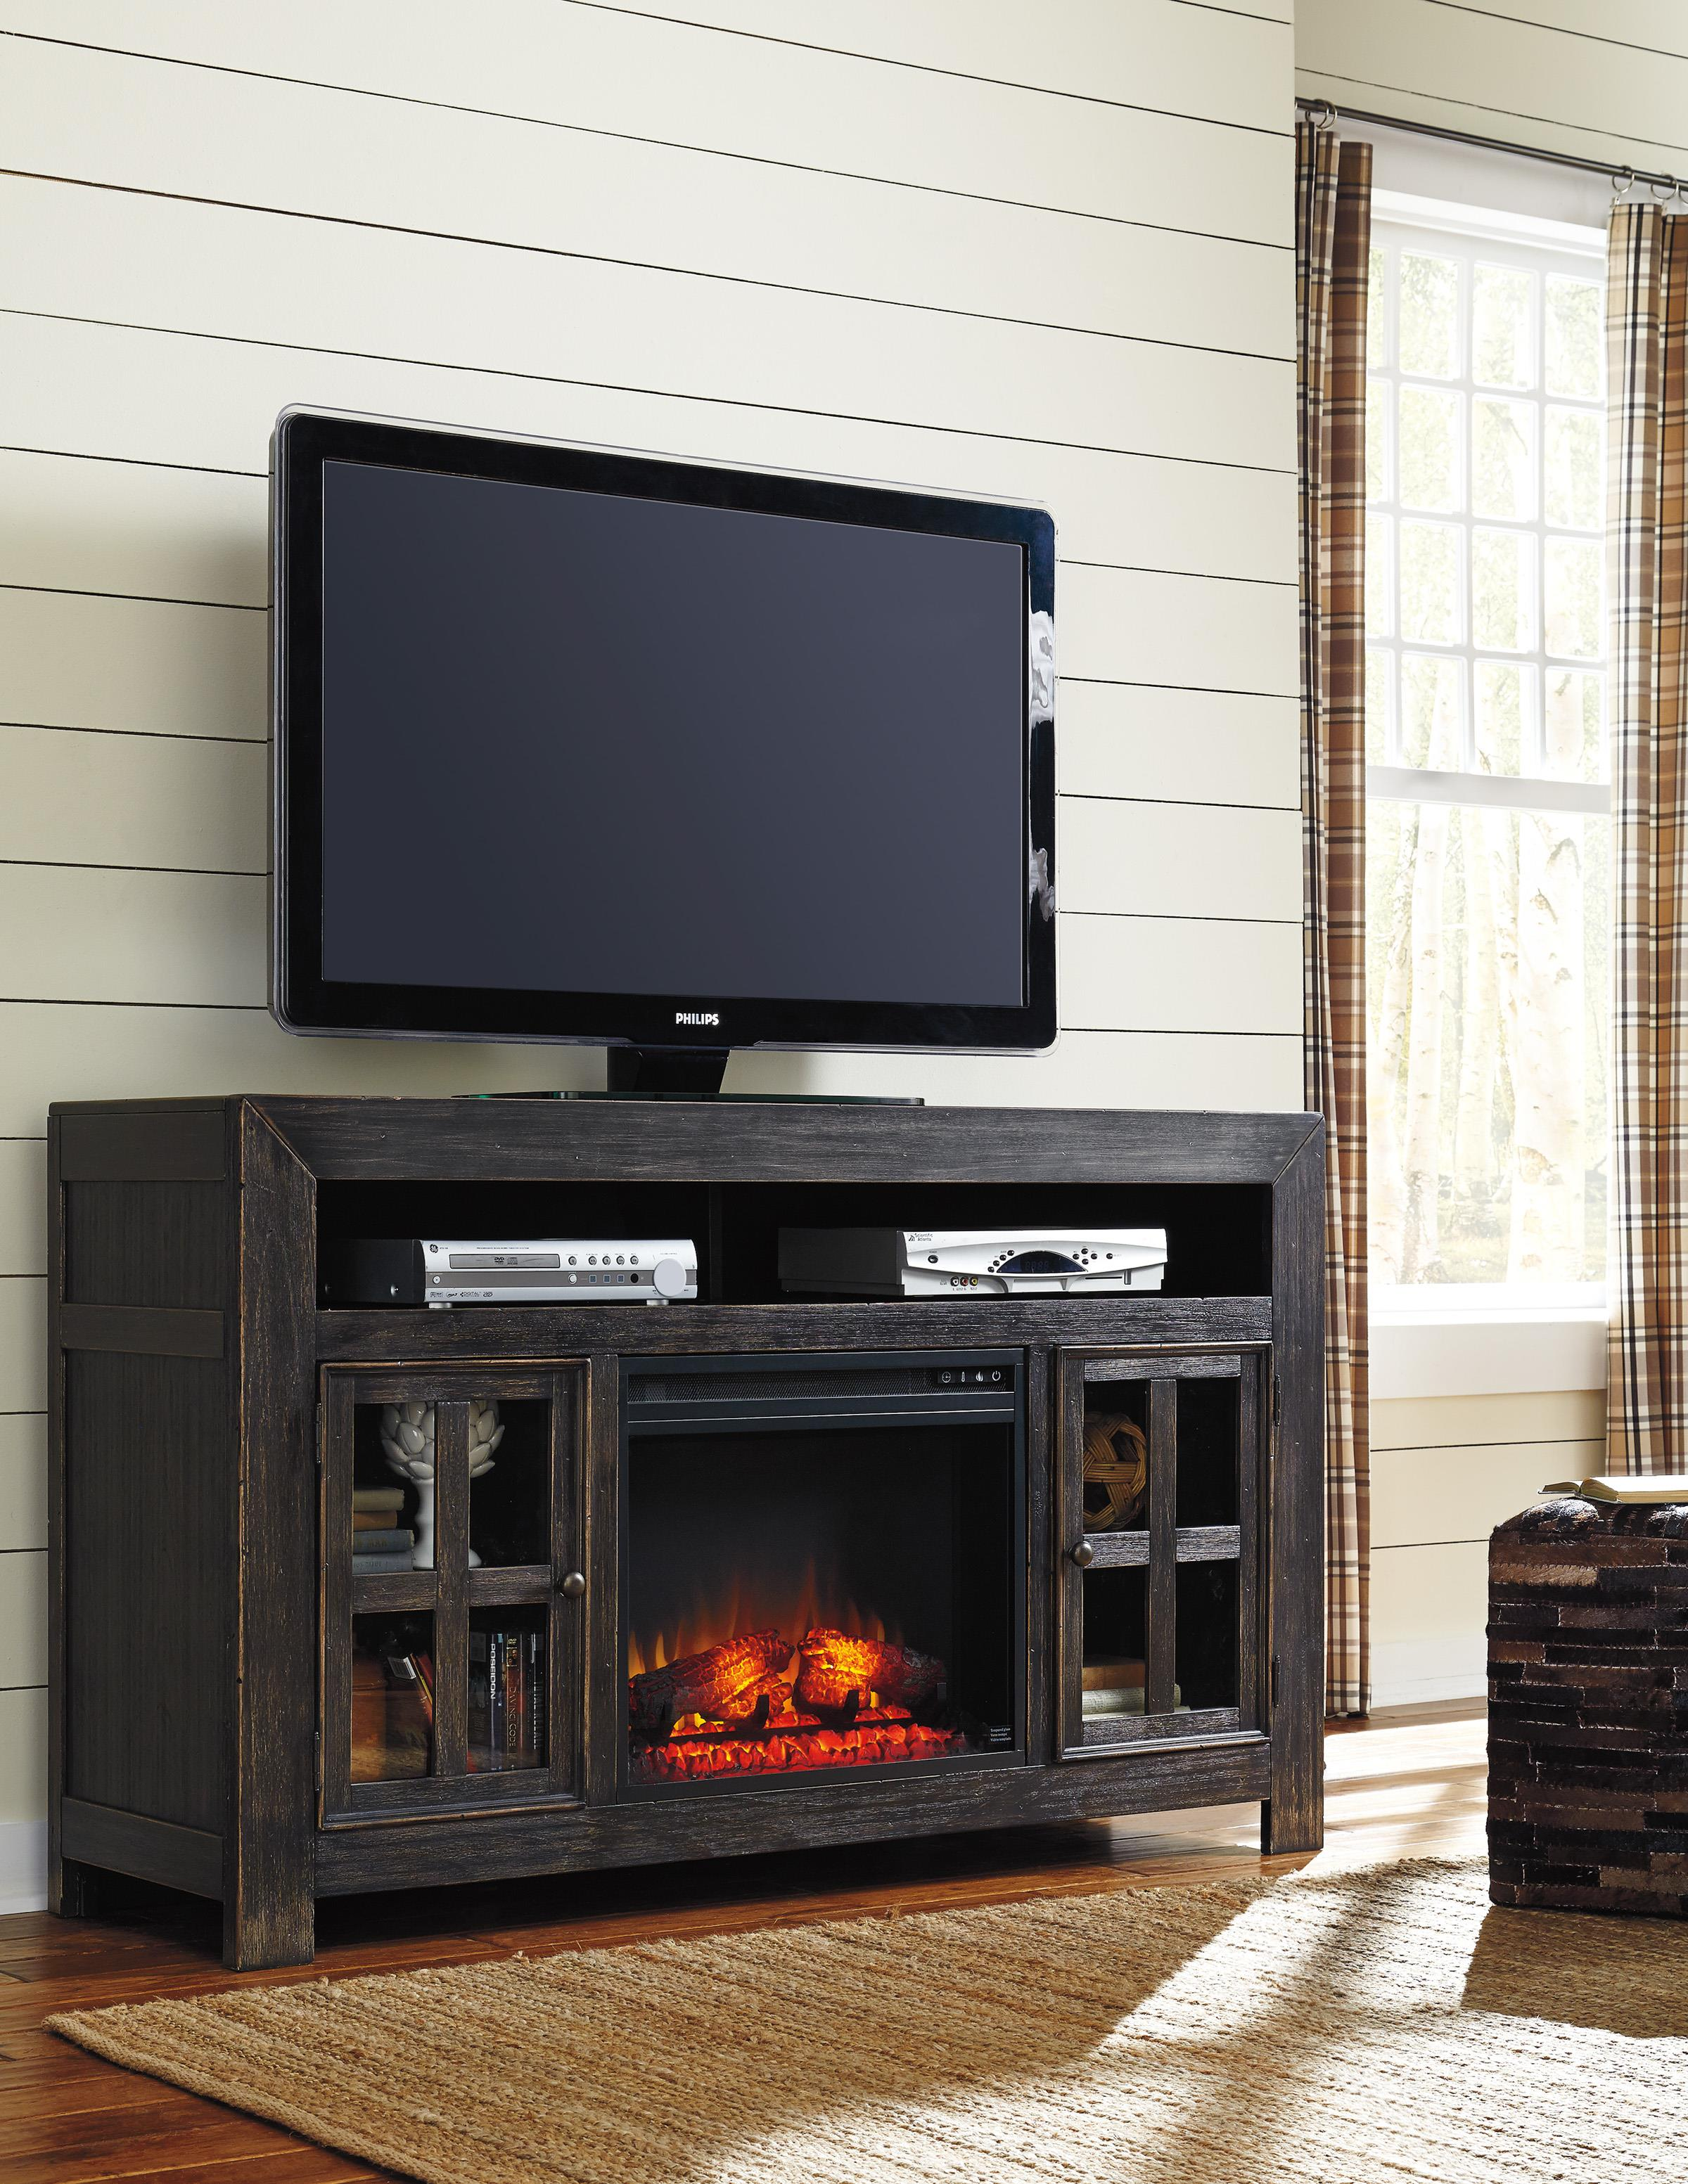 Distressed Black TV Stand with Electric Fireplace